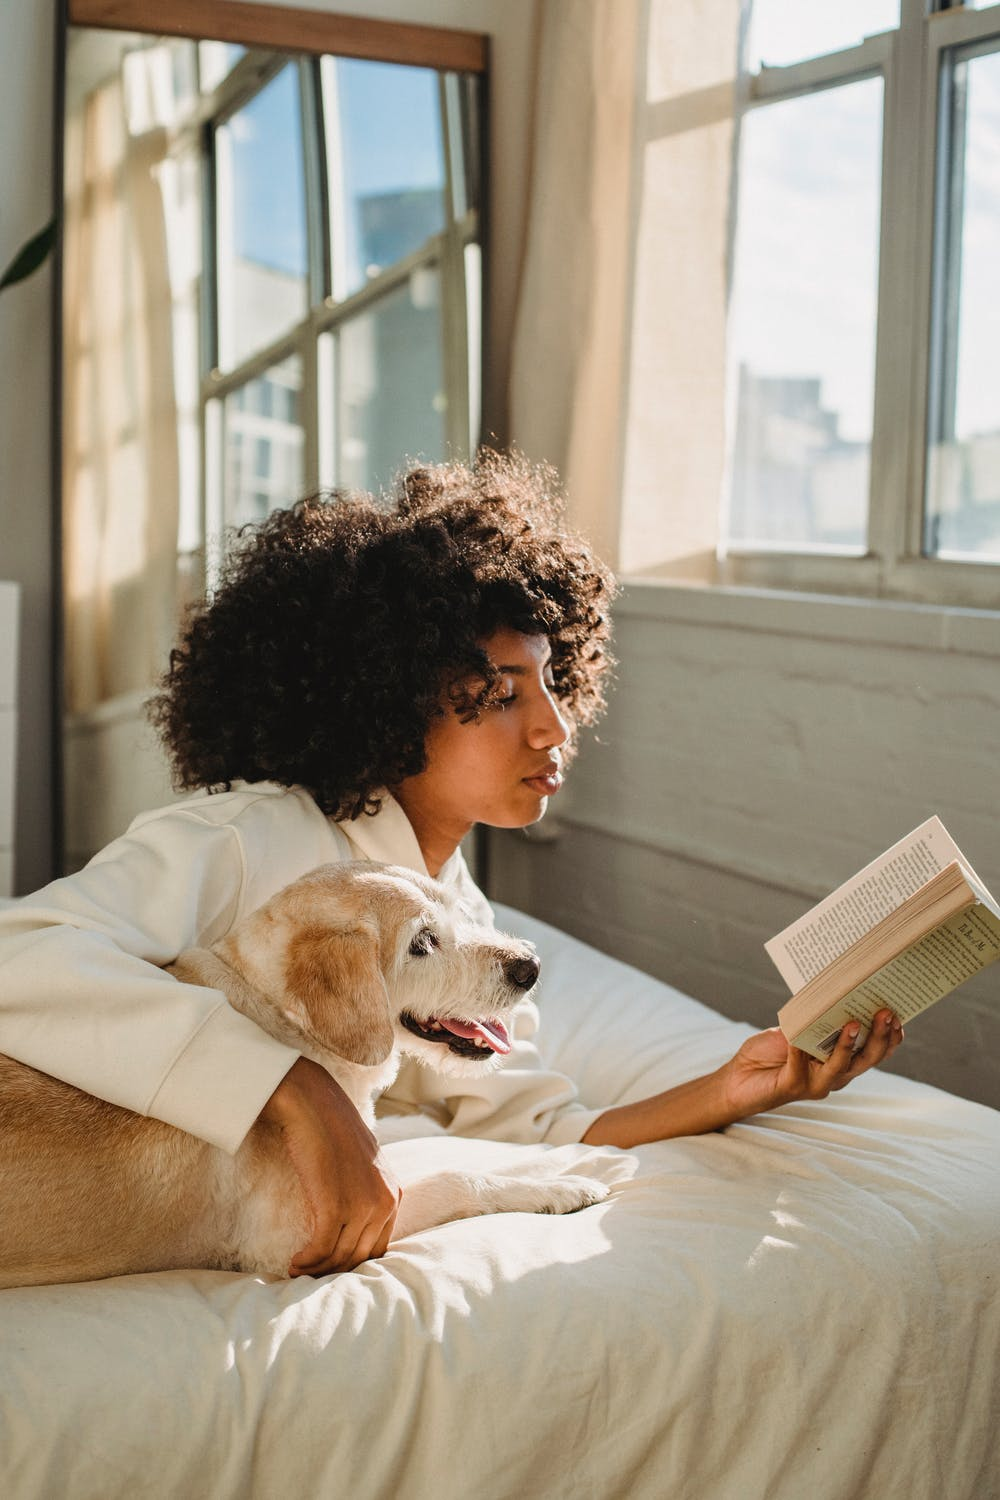 black woman reading a book with dog on bed on an apartment